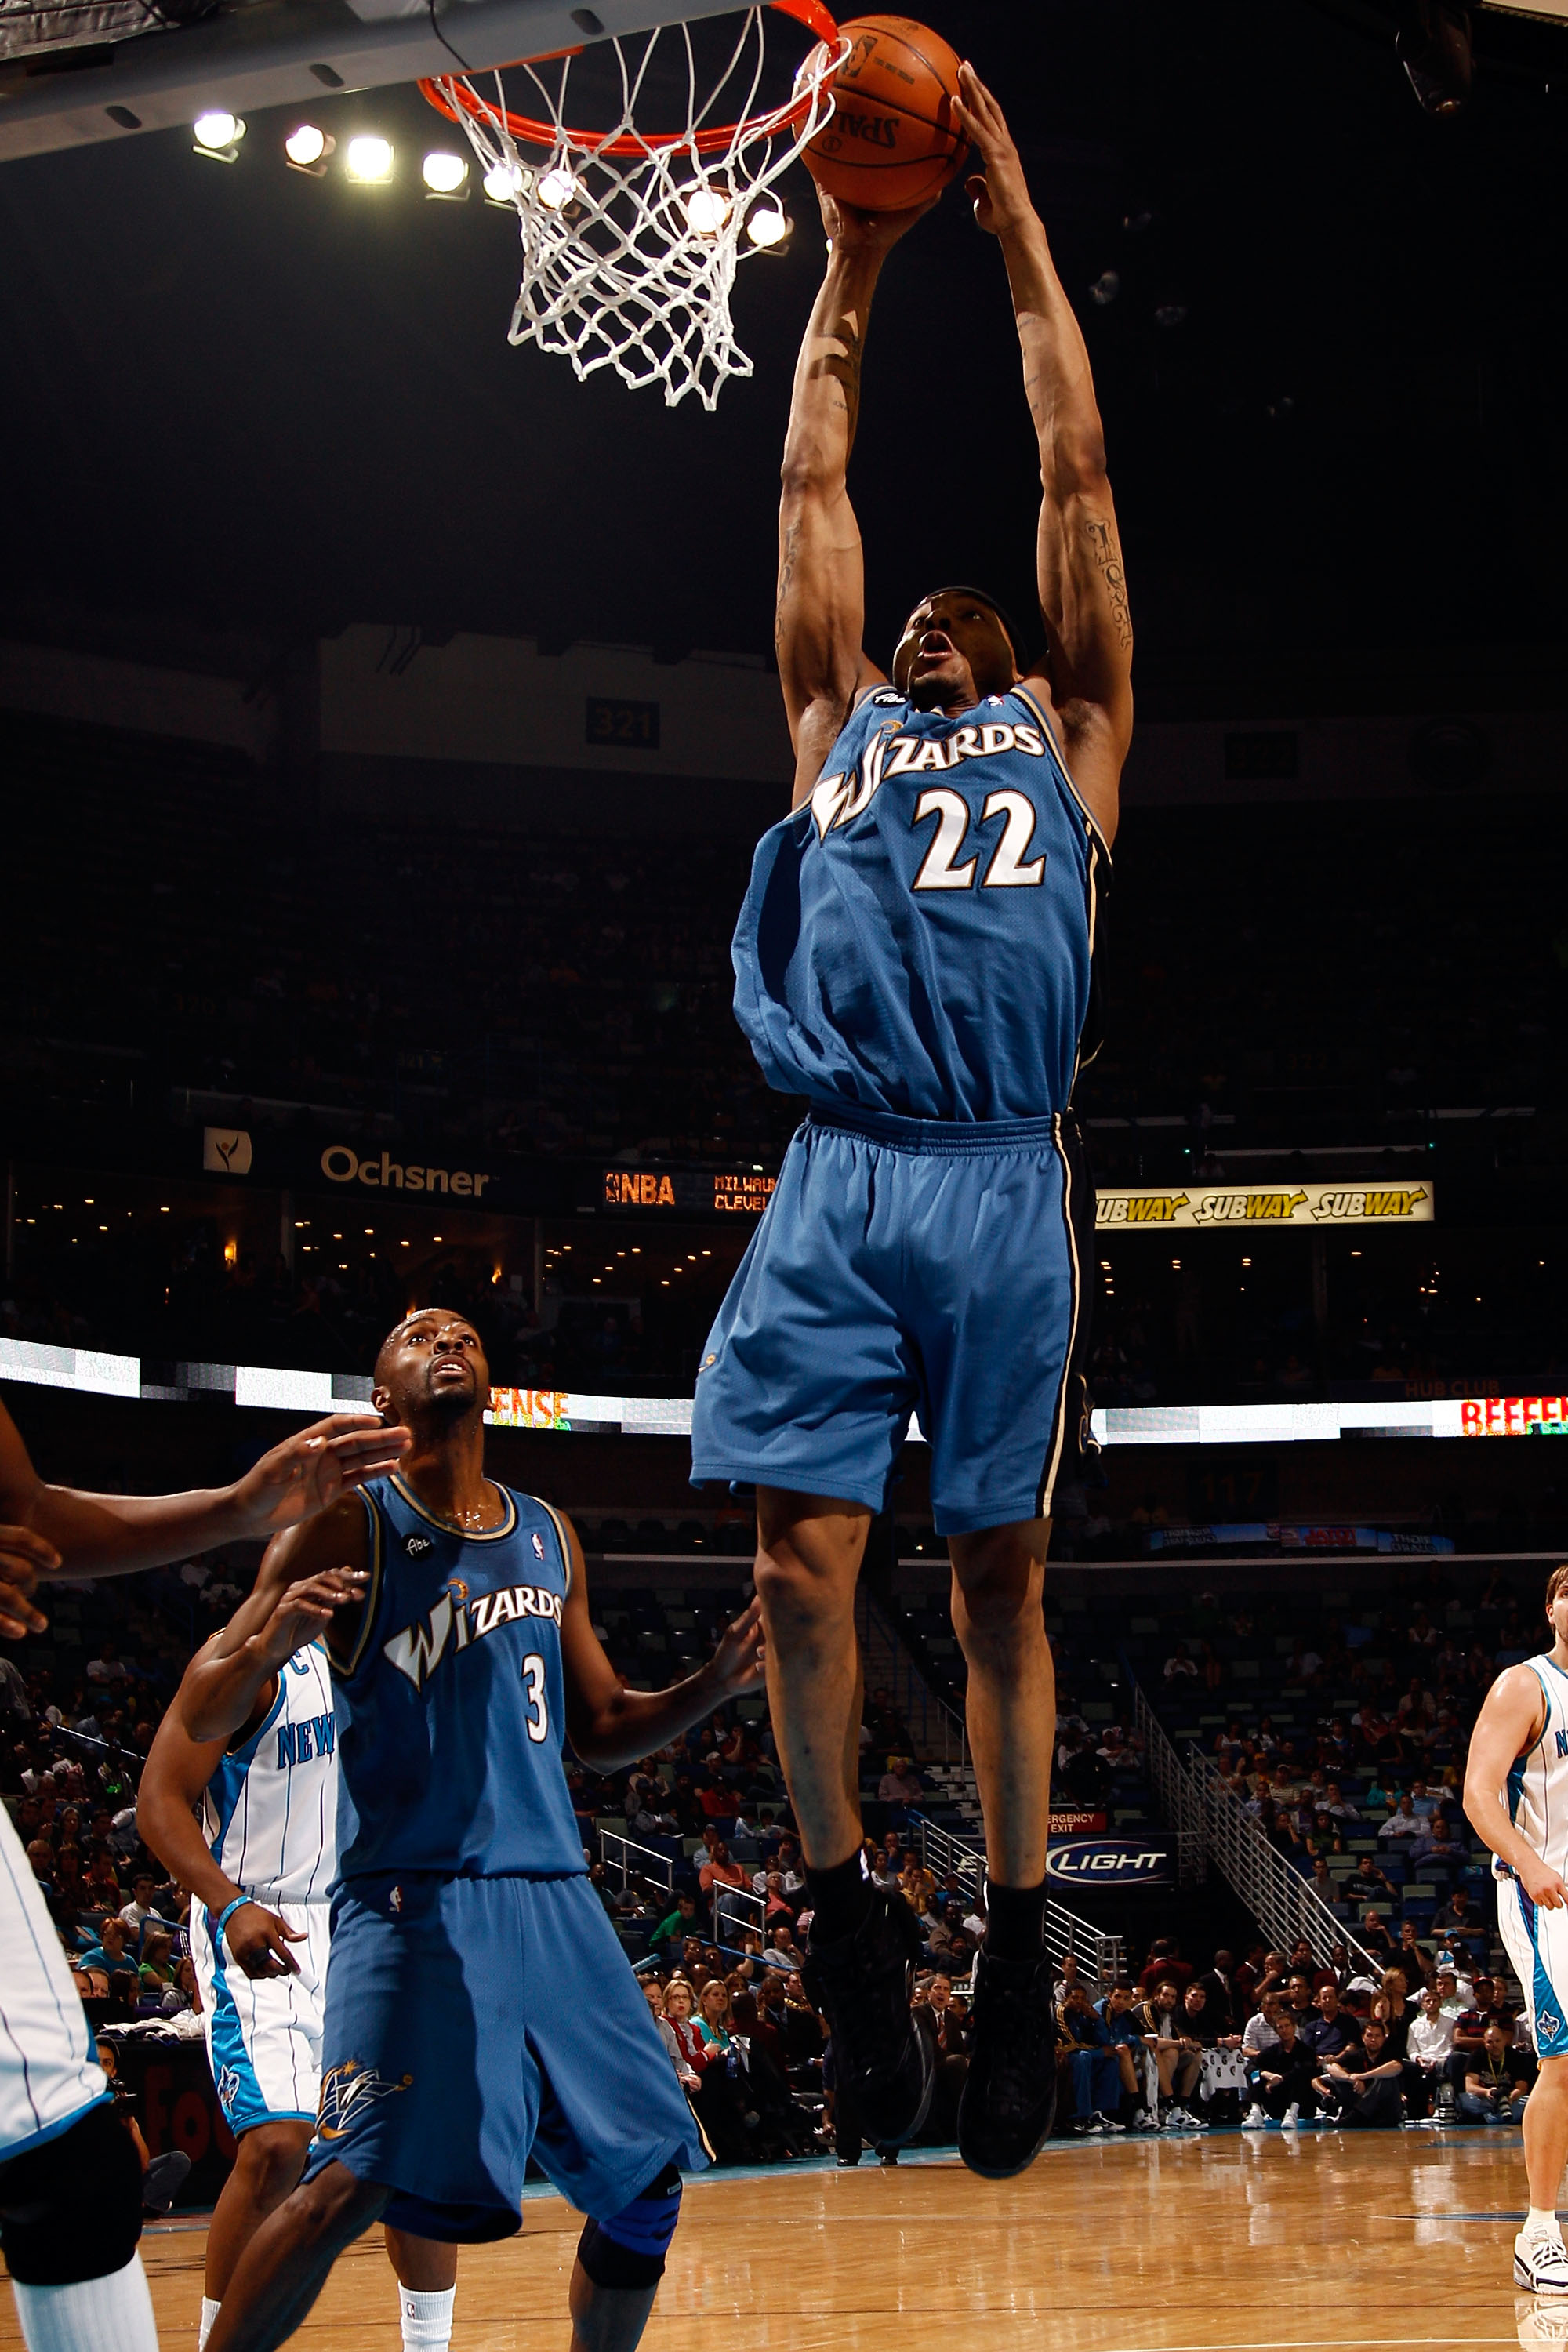 NEW ORLEANS - MARCH 31:  James Singleton #22 of the Washington Wizards dunks the ball against the New Orleans Hornets at New Orleans Arena on March 31, 2010 in New Orleans, Louisiana.  NOTE TO USER: User expressly acknowledges and agrees that, by download